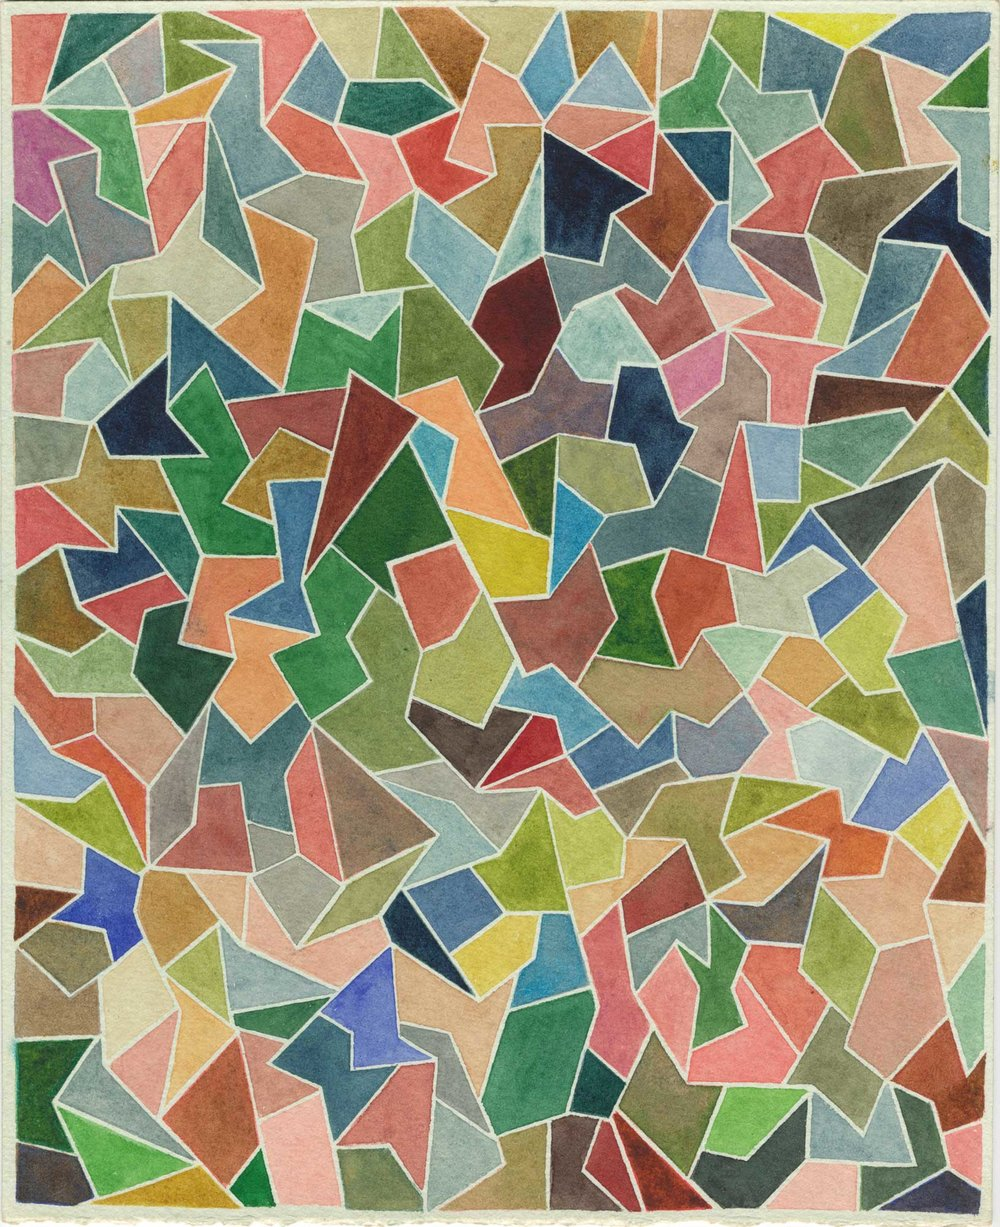 Shaun McCracken   Untitled #274 , 2012 10 x 8 inch Watercolor on paper